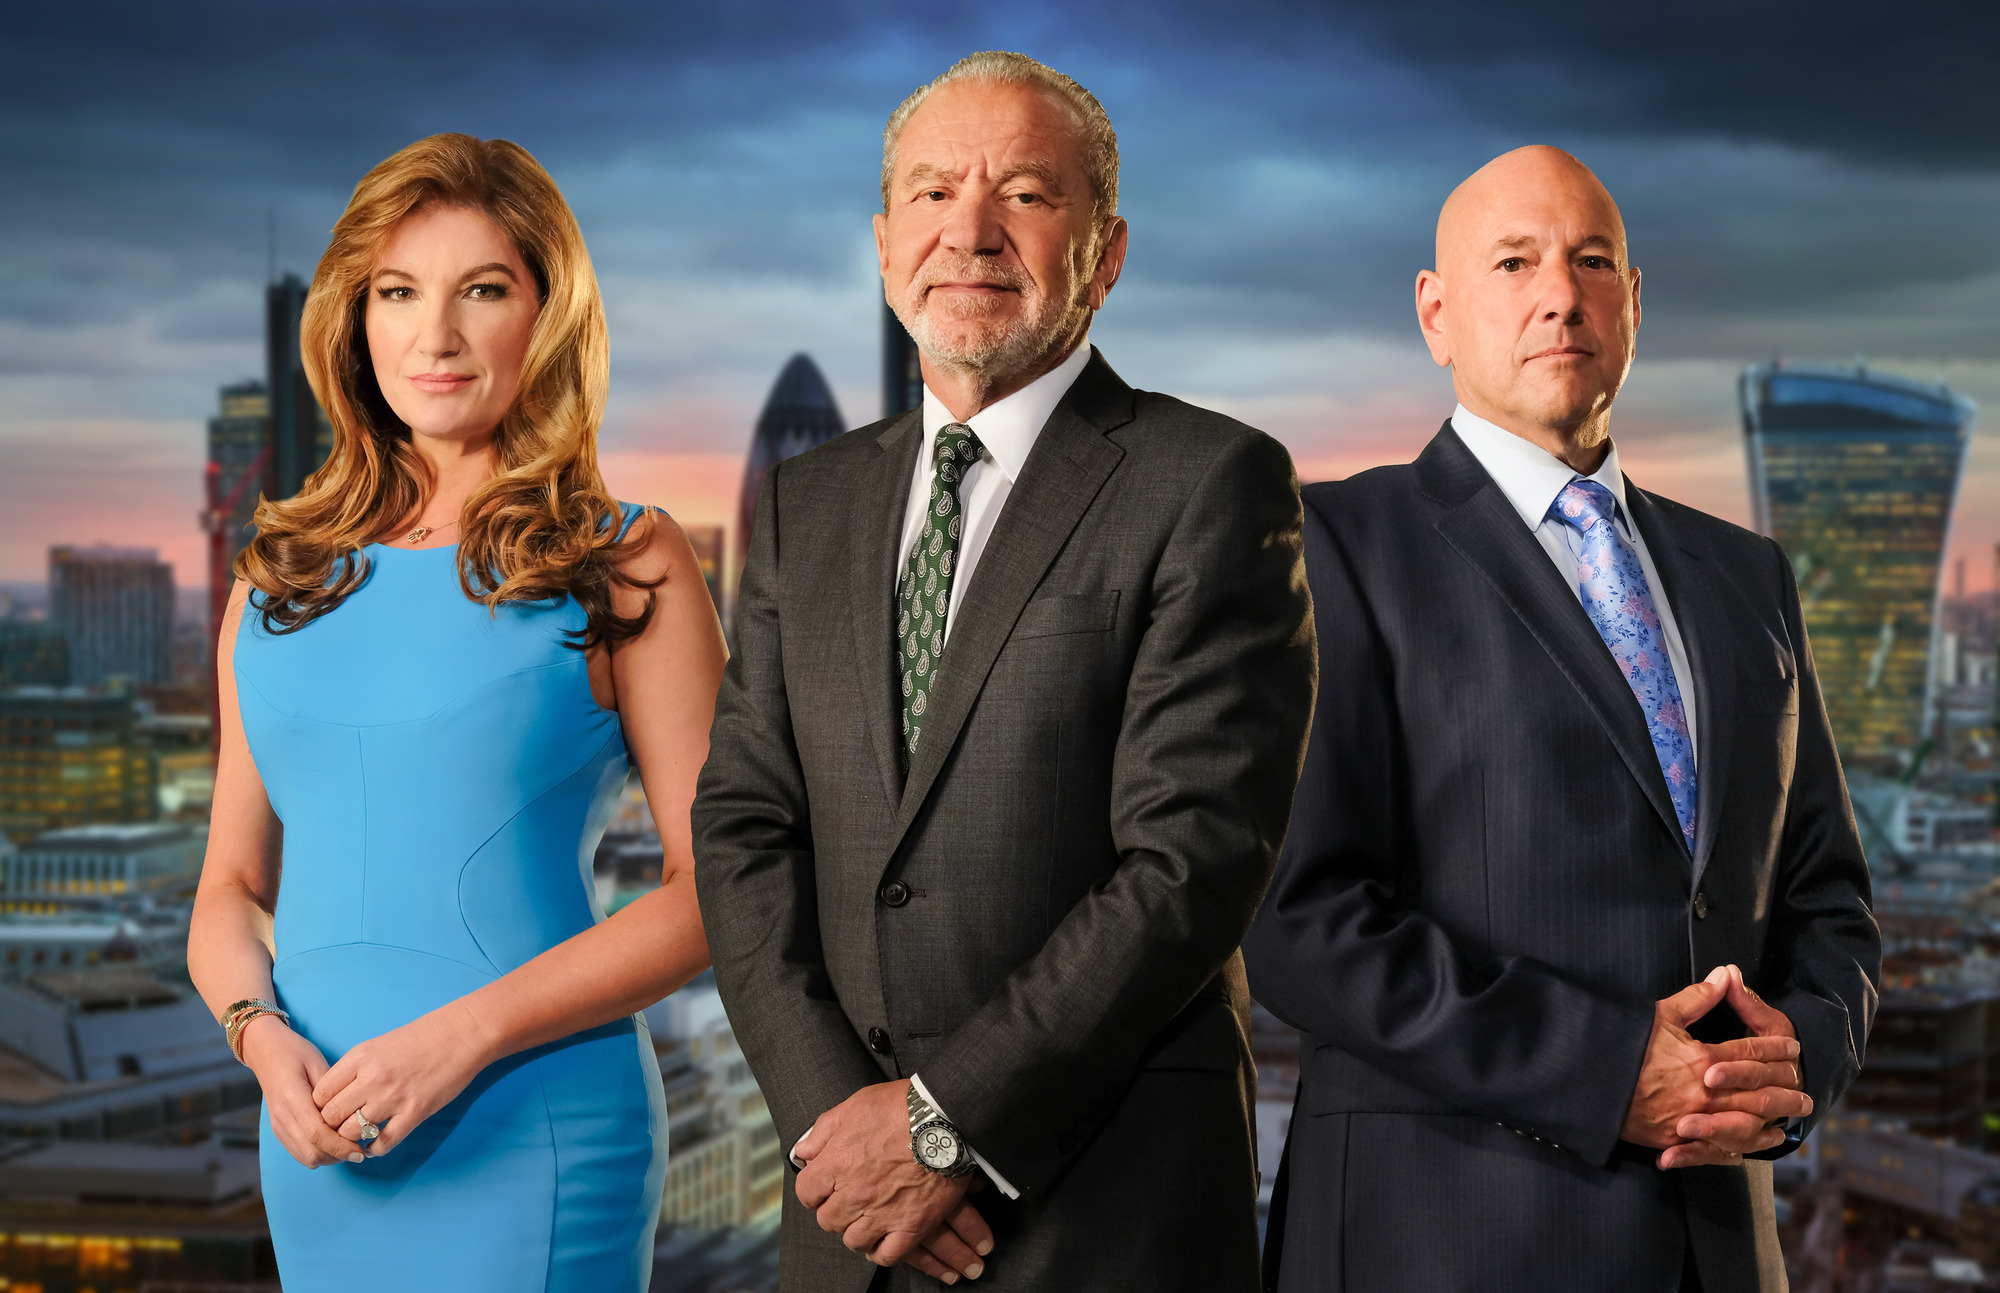 Claude Littner's net worth compared to The Apprentice's Lord Sugar and Baroness Karren Brady